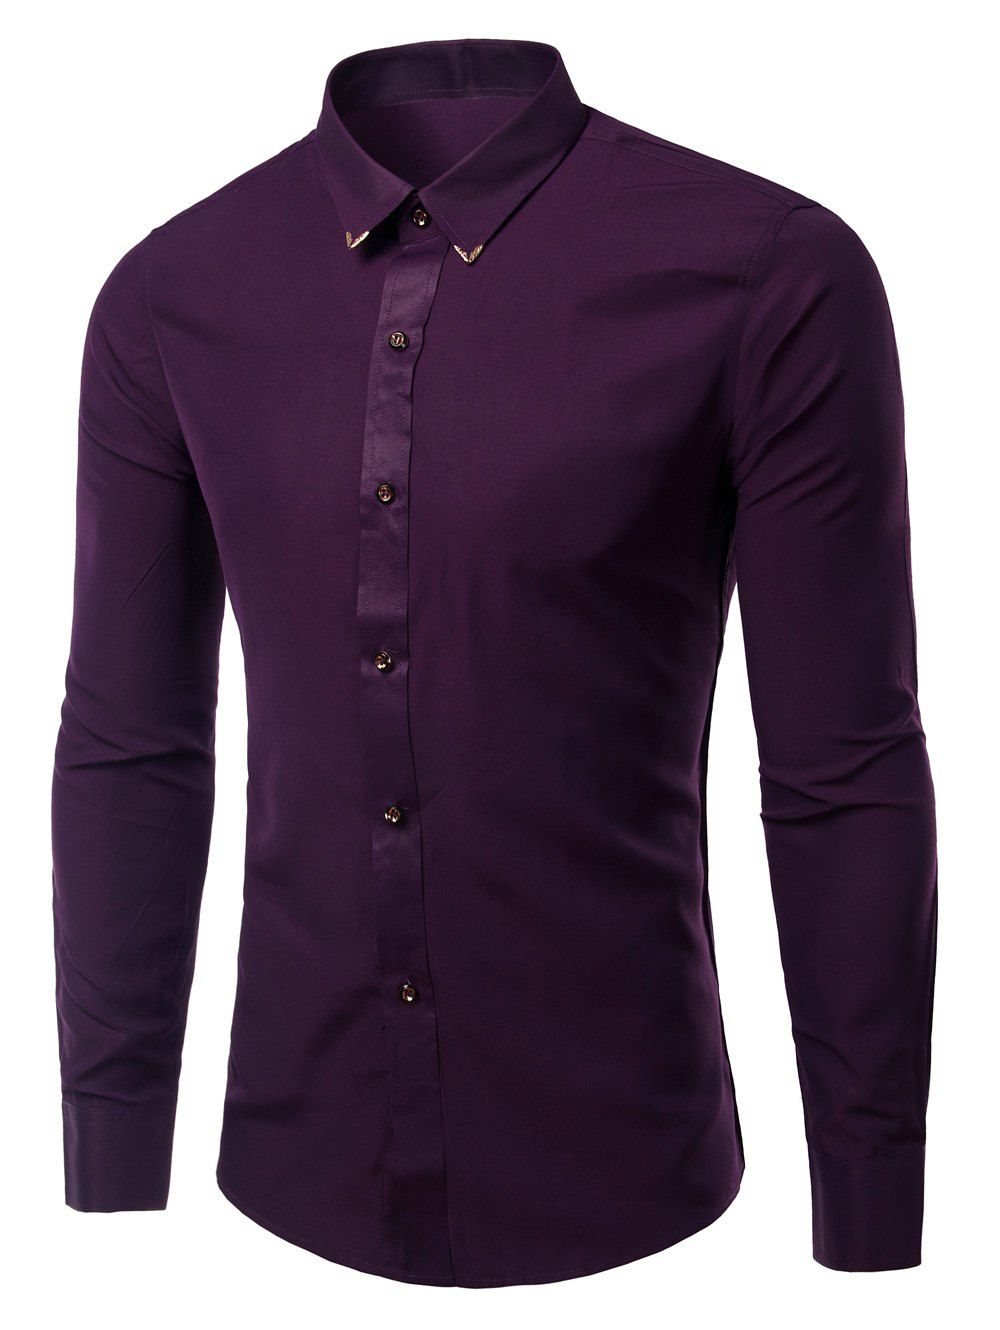 Long Sleeves Shirts Solid Color Metallic Turn Down Collar For Men